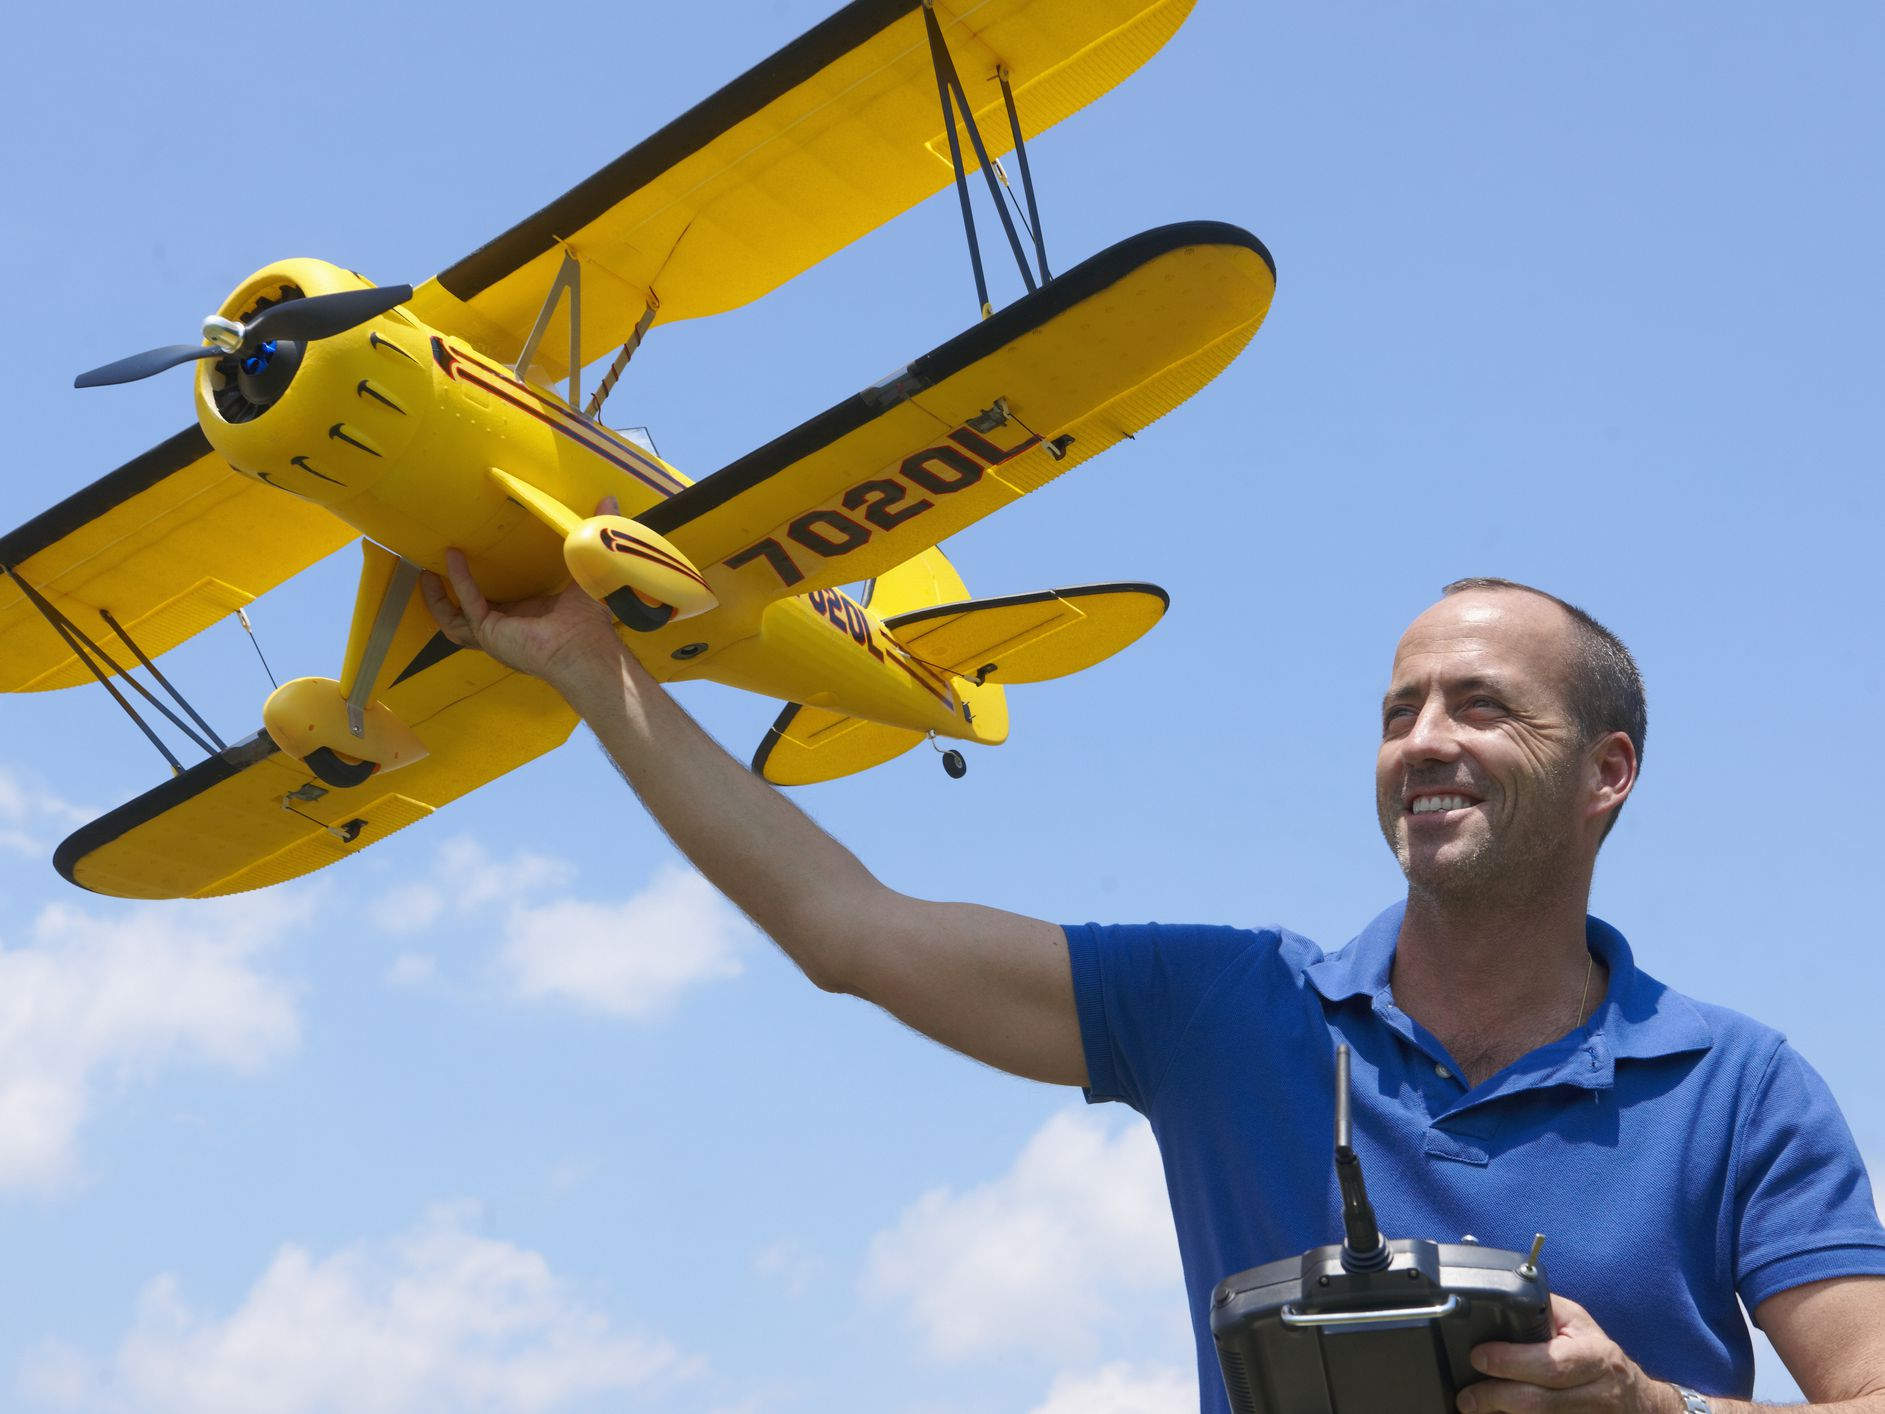 The 7 Best Remote Control Airplanes of 2019